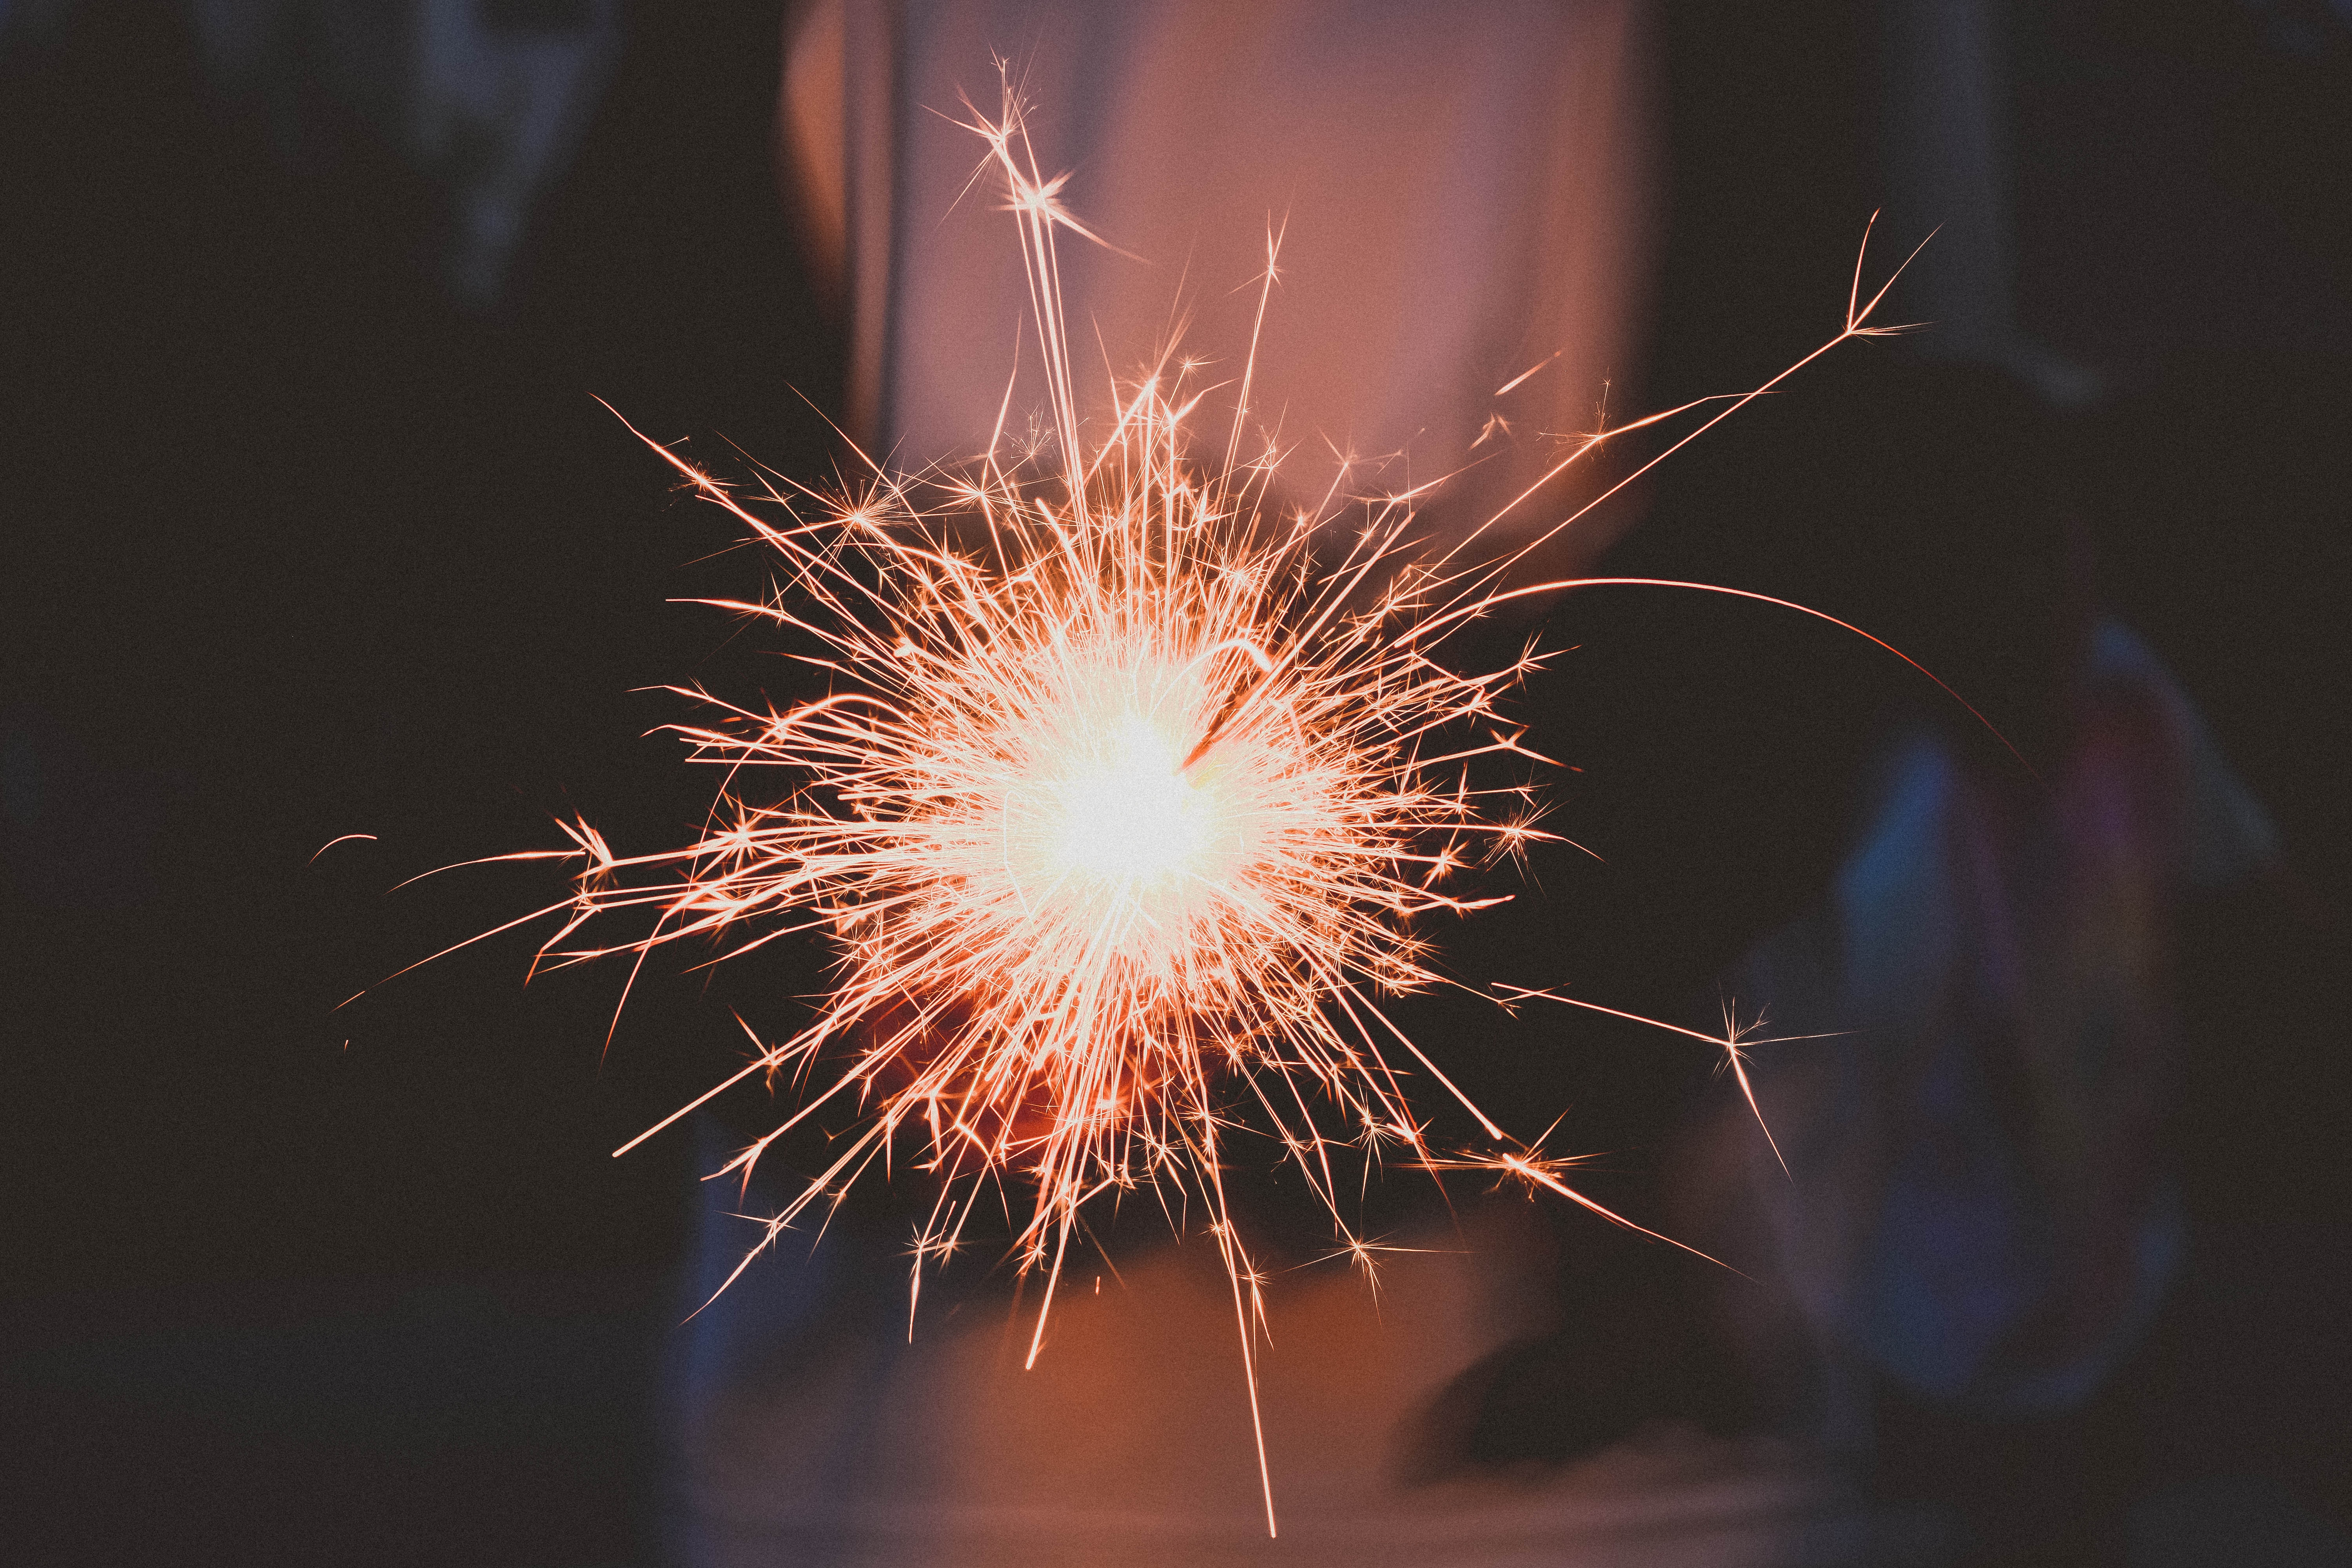 143600 Screensavers and Wallpapers Sparks for phone. Download Holidays, Sparks, Holiday, Sparkler pictures for free